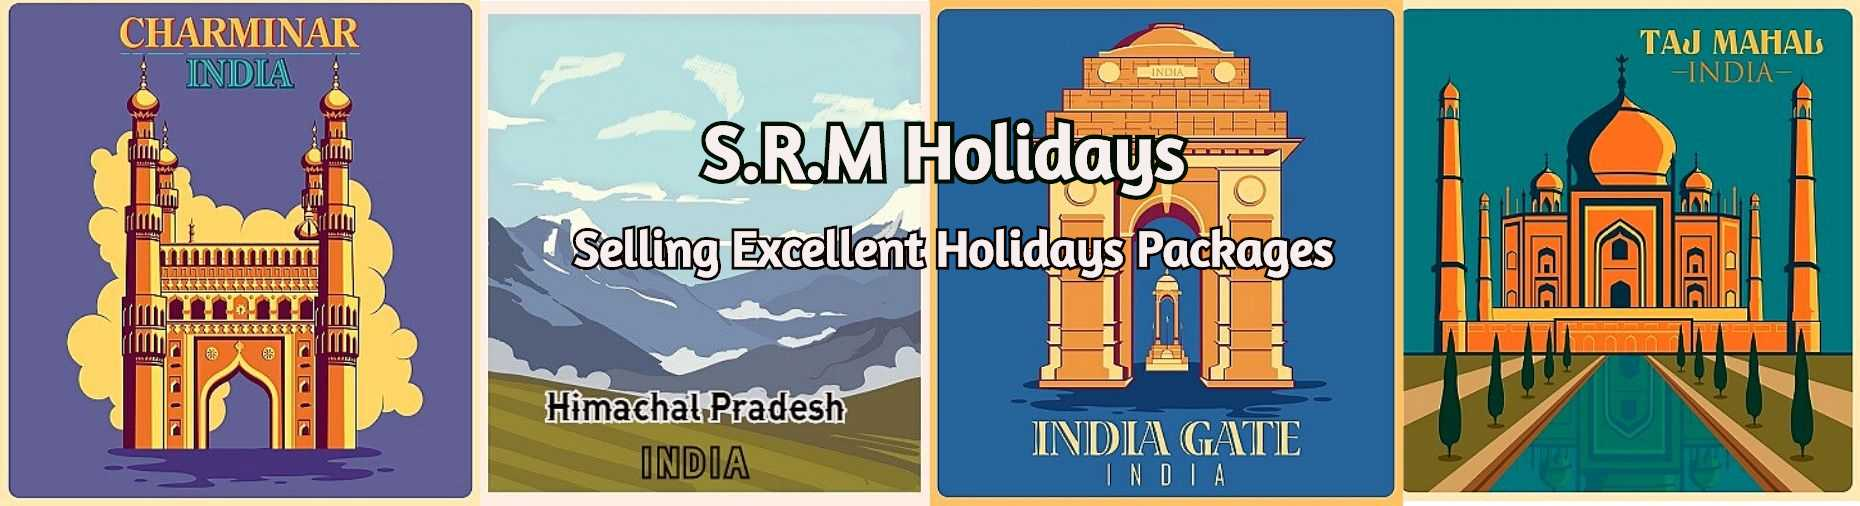 Travel_agents_in_Delhi_SRM Holidays_Private_Limited